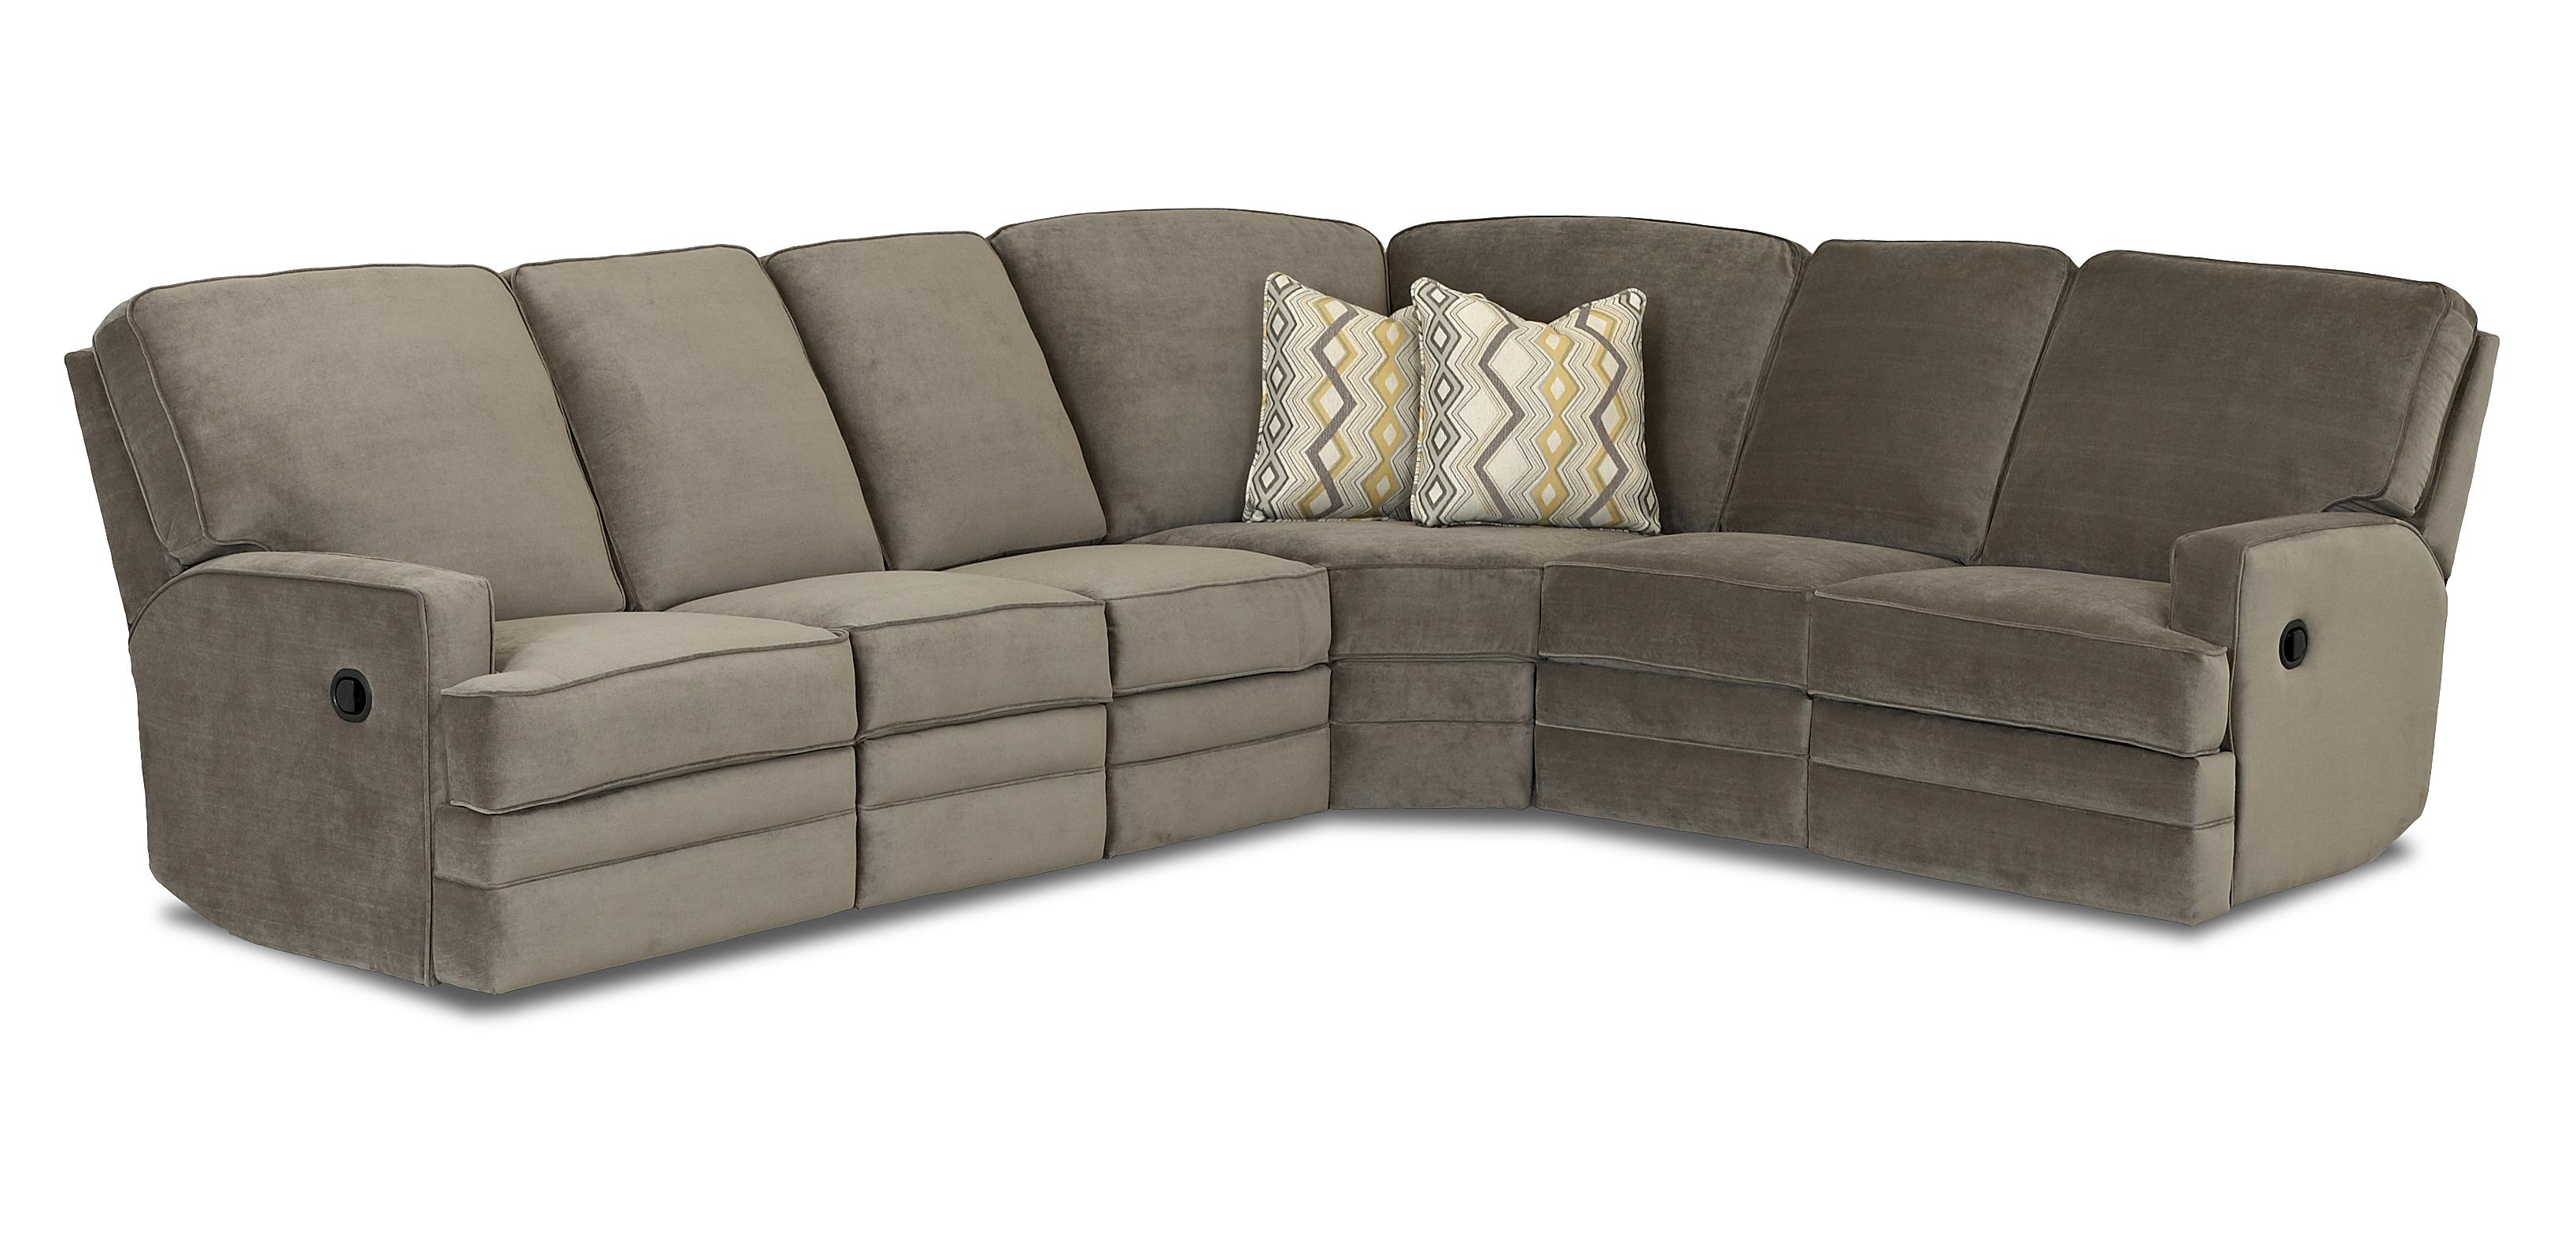 Klaussner Chapman Casual Power Reclining Sectional Sofa